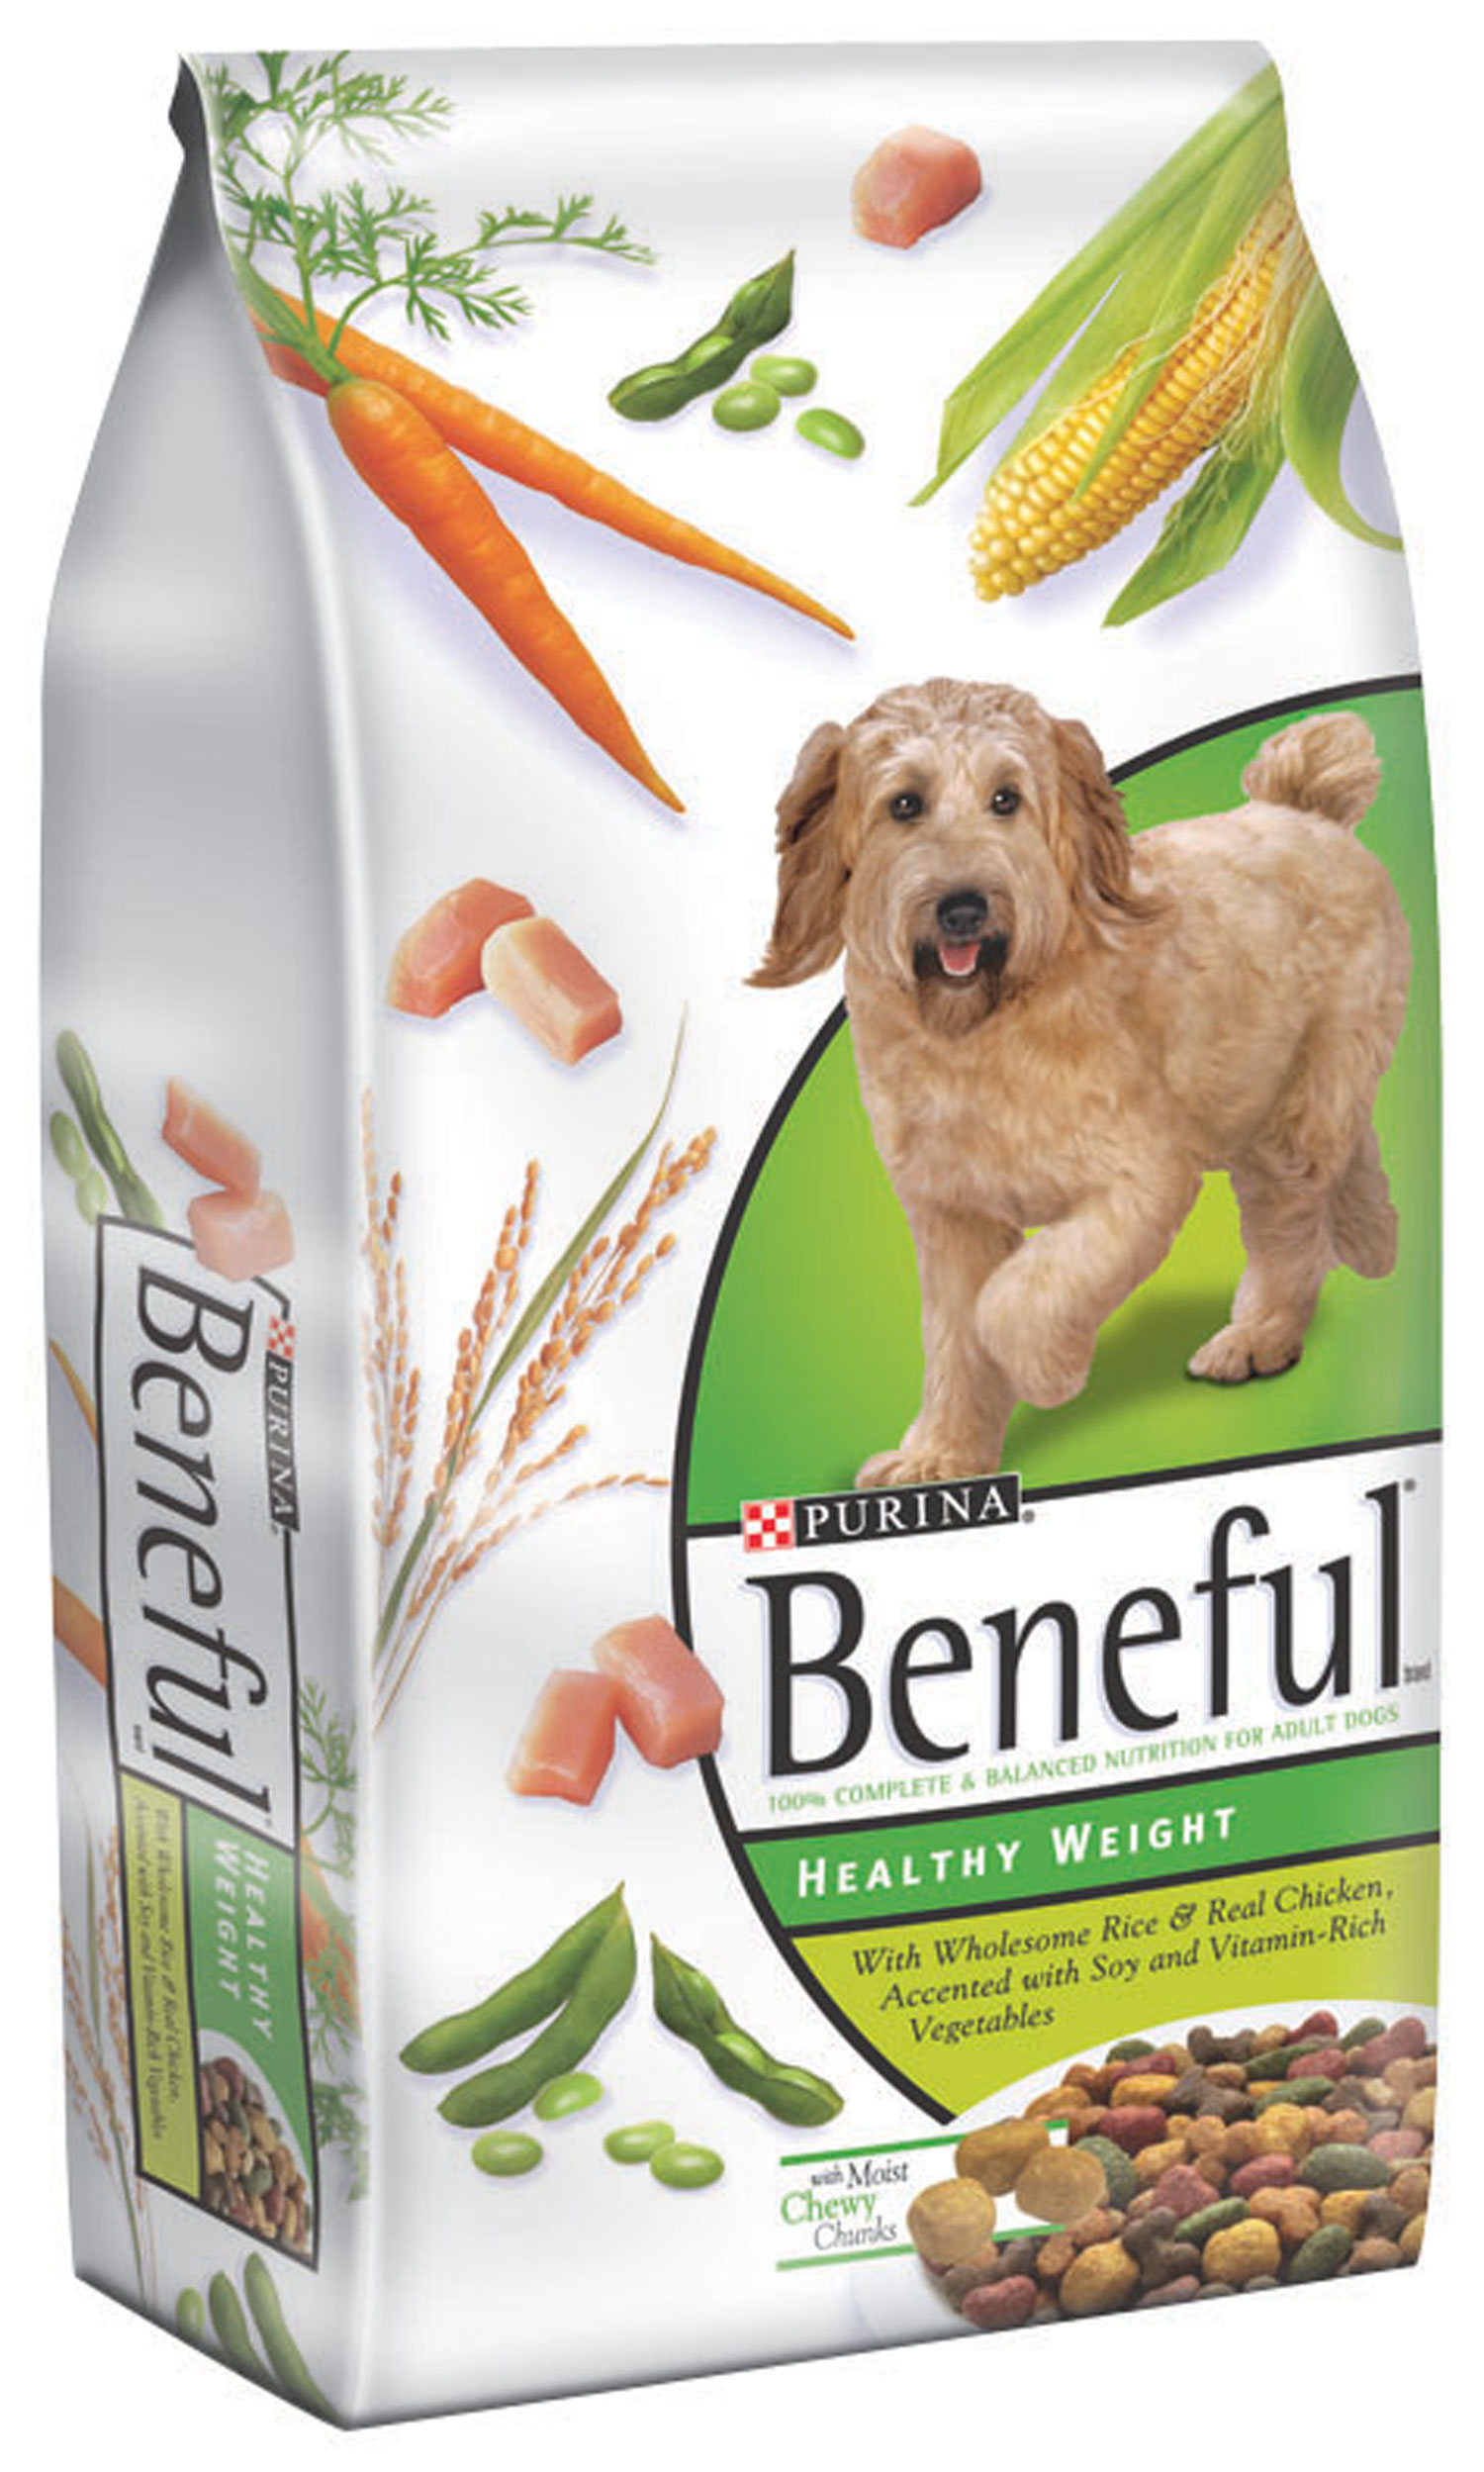 Beneful Healthy Weight Dry Dog Food | Dog | Food | PetFlow